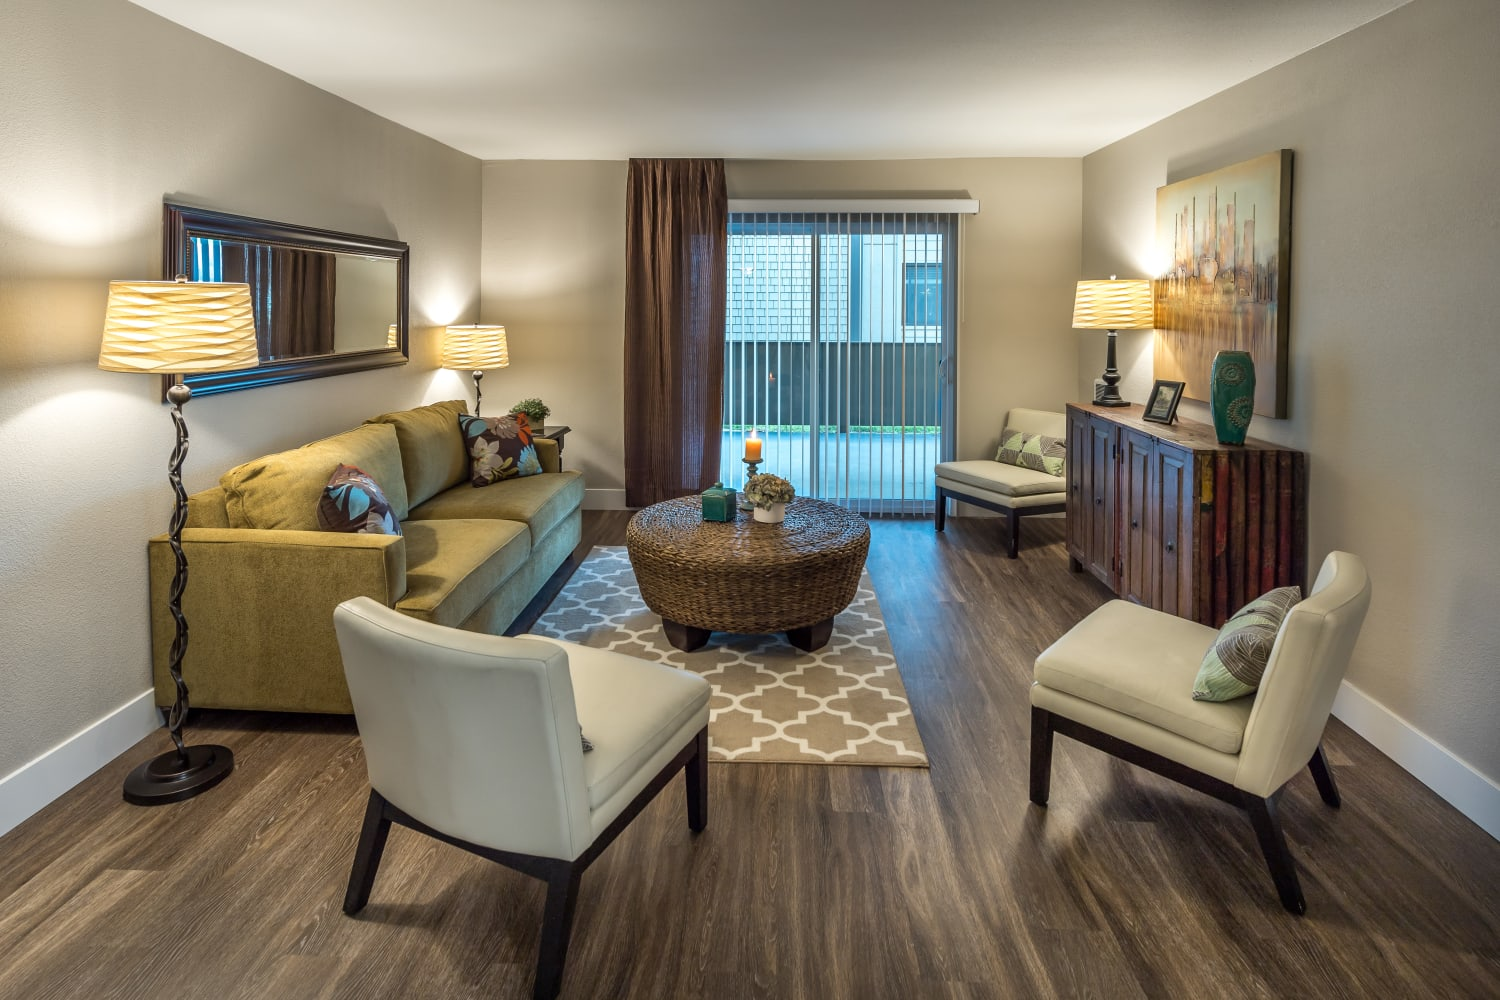 Harbor Cove Apartments in Foster City, California, offer beautiful hardwood floors